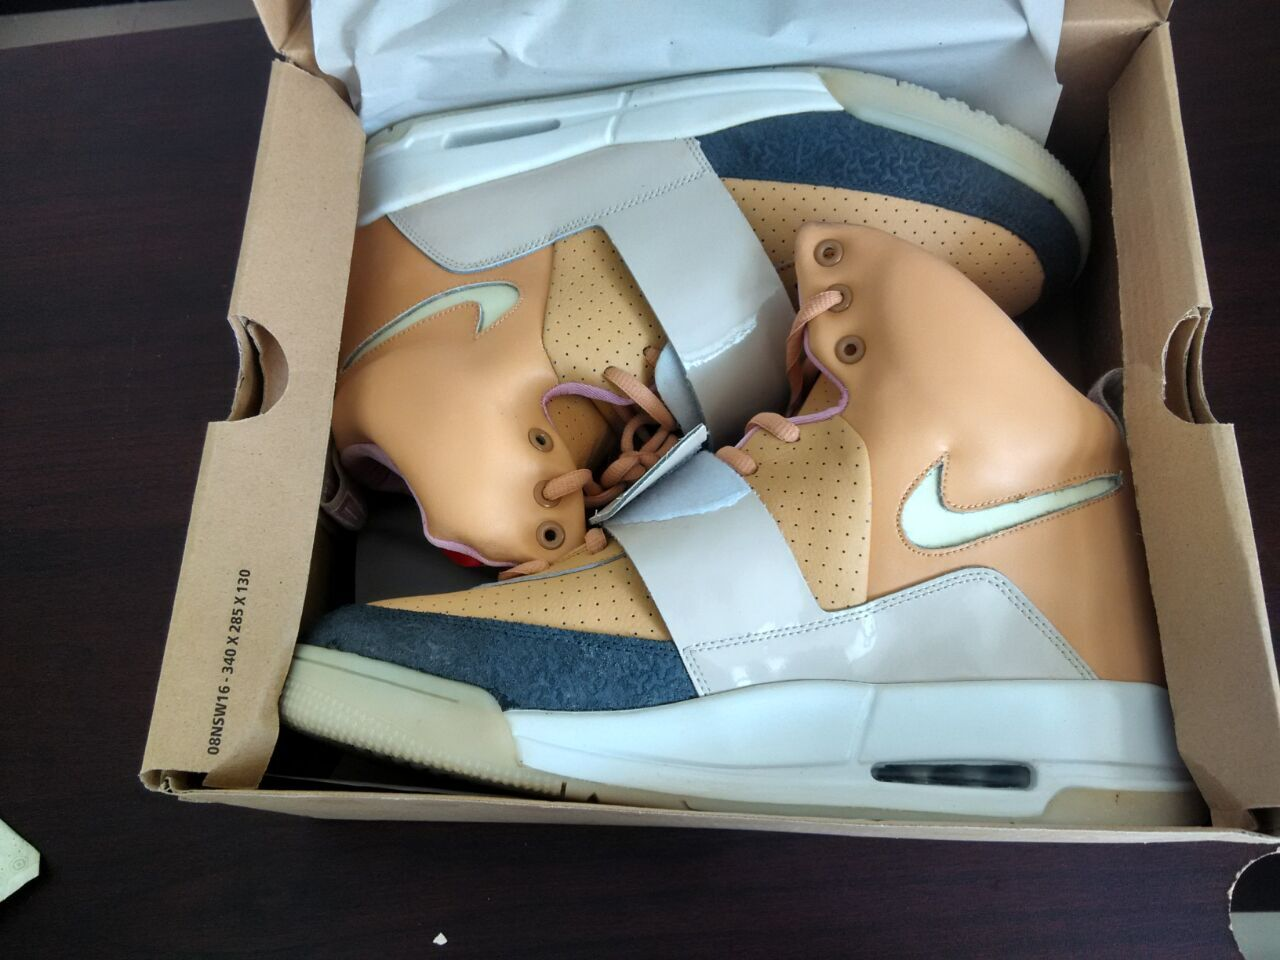 Air Yeezy Net/Net Tan New Batch 2013 Swoosh Glow - Click Image to Close